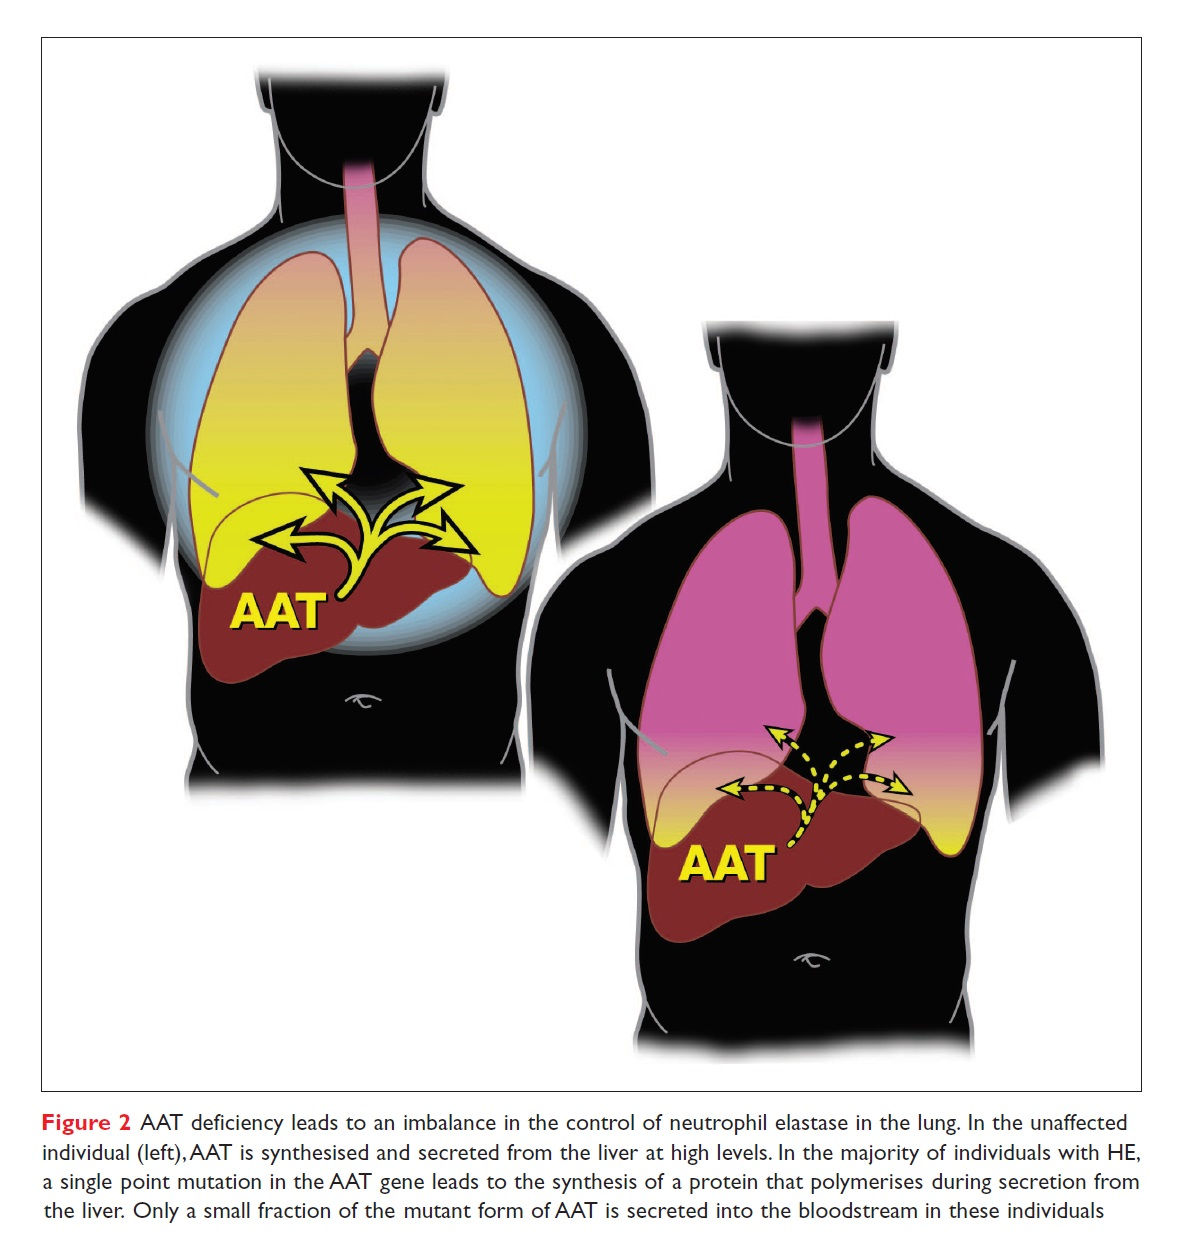 Figure 2 AAT deficiency leads to an imbalance in the control of neutrophil elastase in the lung